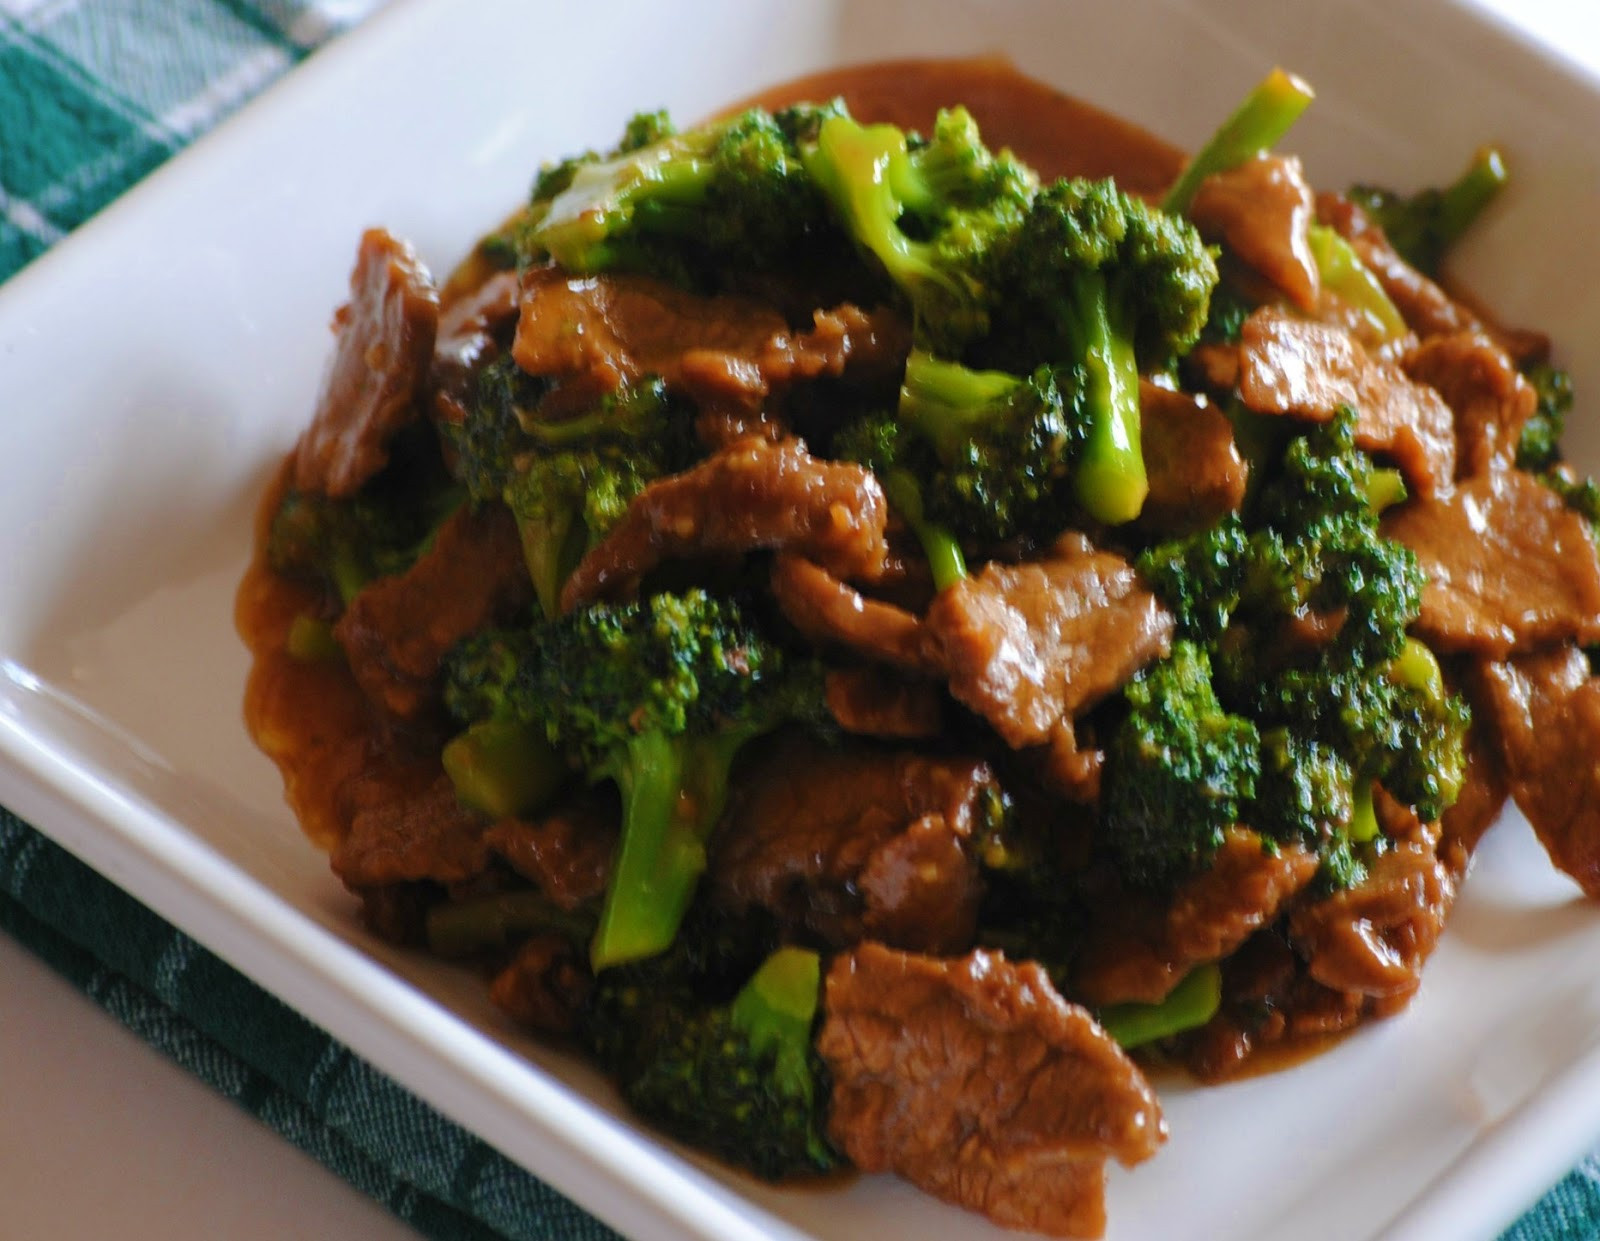 Best Beef And Broccoli Recipe  The Farm Girl Recipes The Best Broccoli Beef